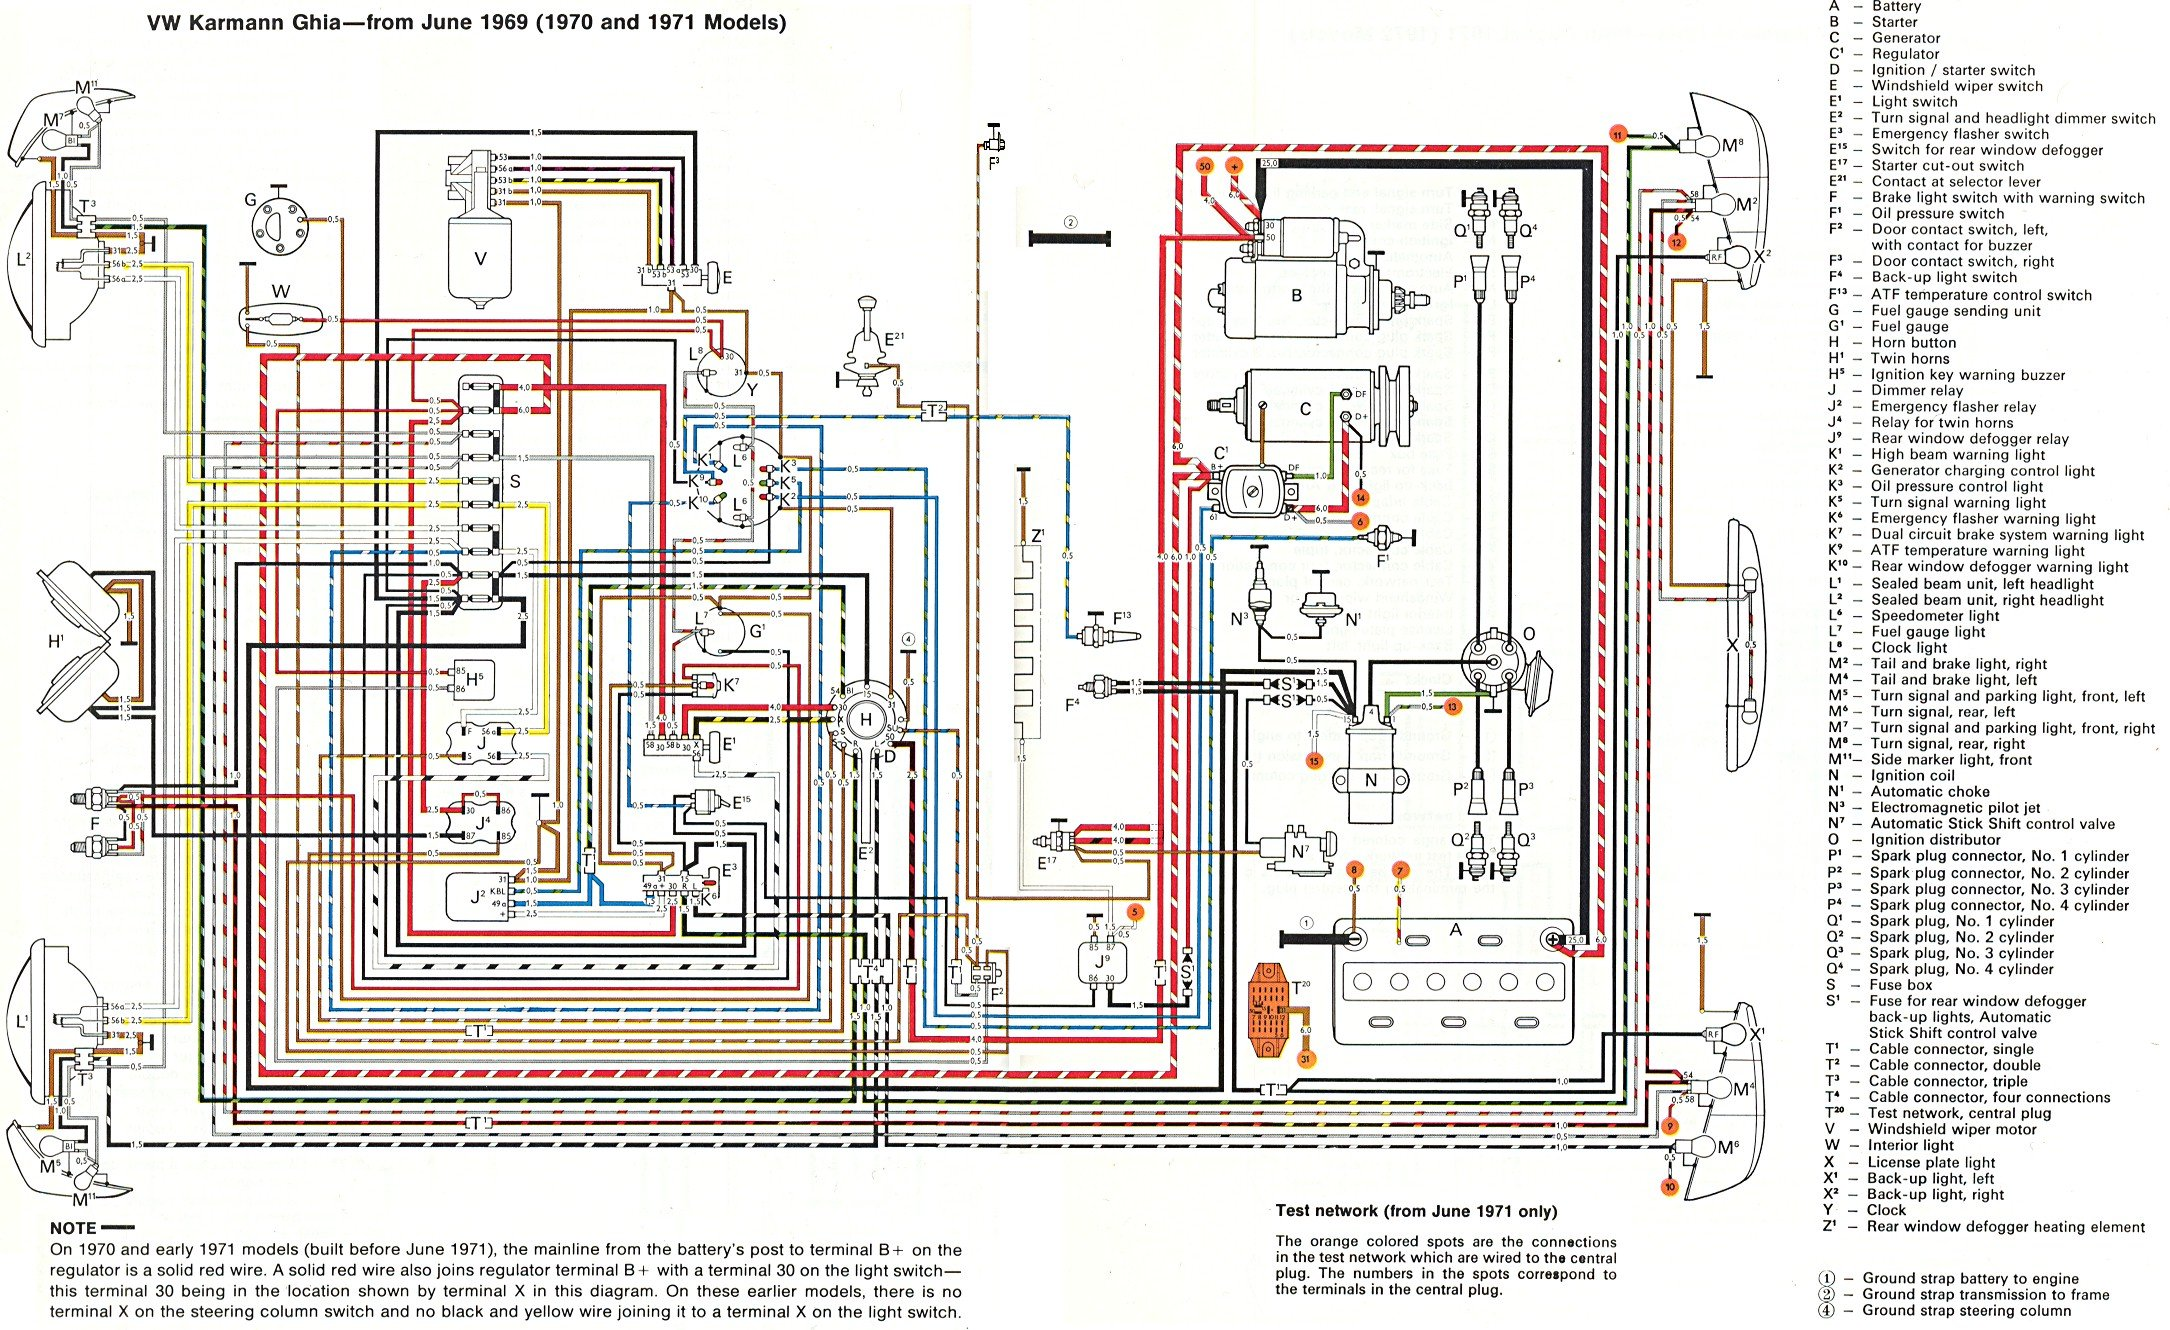 thesamba com karmann ghia wiring diagrams rh thesamba com VW Bug Wiring-Diagram VW Ignition Wiring Diagram